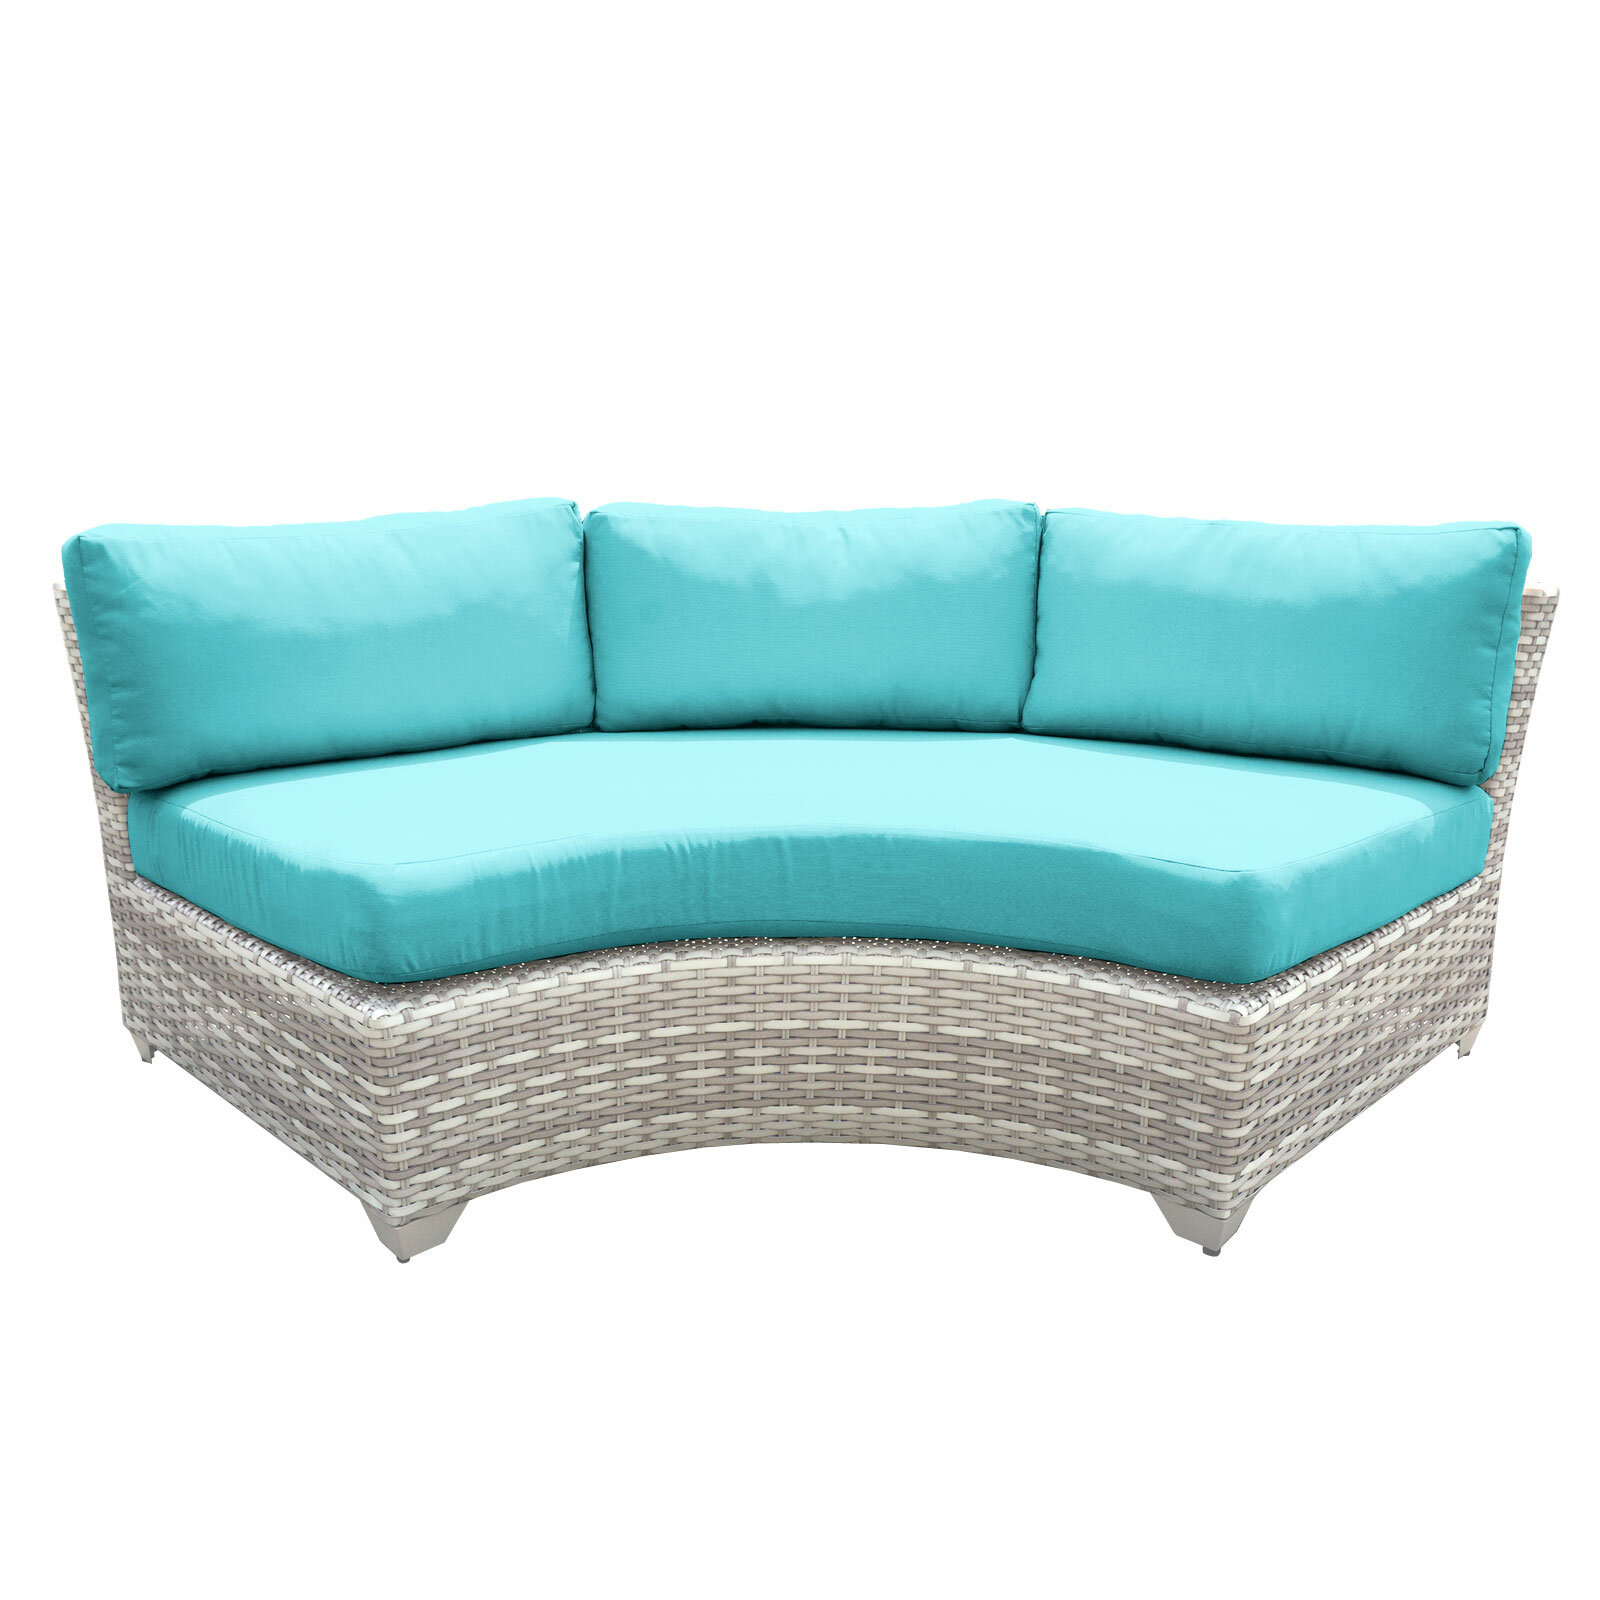 with outdoor conversation set sectional sets you love kenn cushions wayfair patio save sunbrella furniture turquoise pieces ll